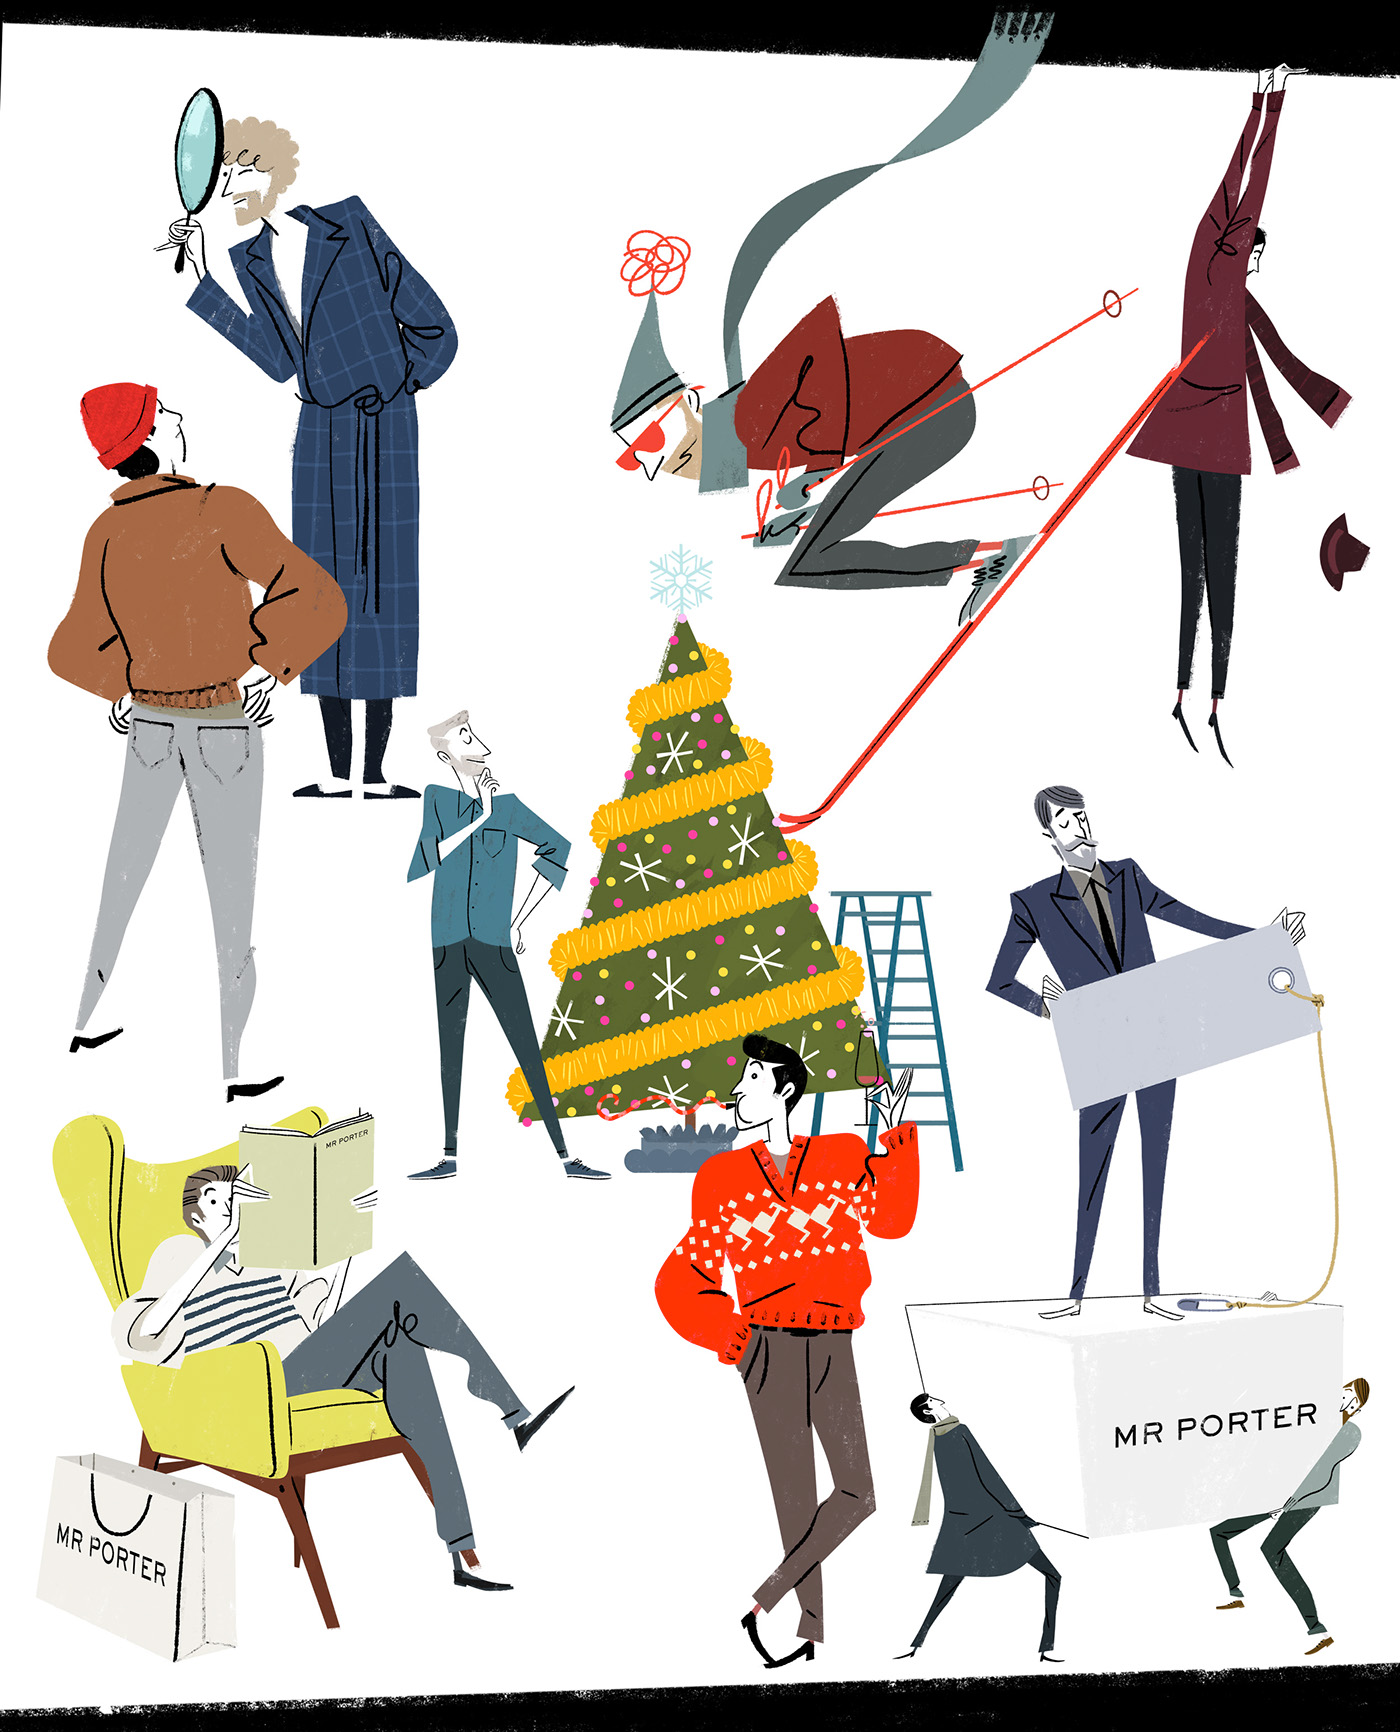 Le Meilleur Mr Porter Net A Porter Christmas Campaign 2016 On Behance Ce Mois Ci